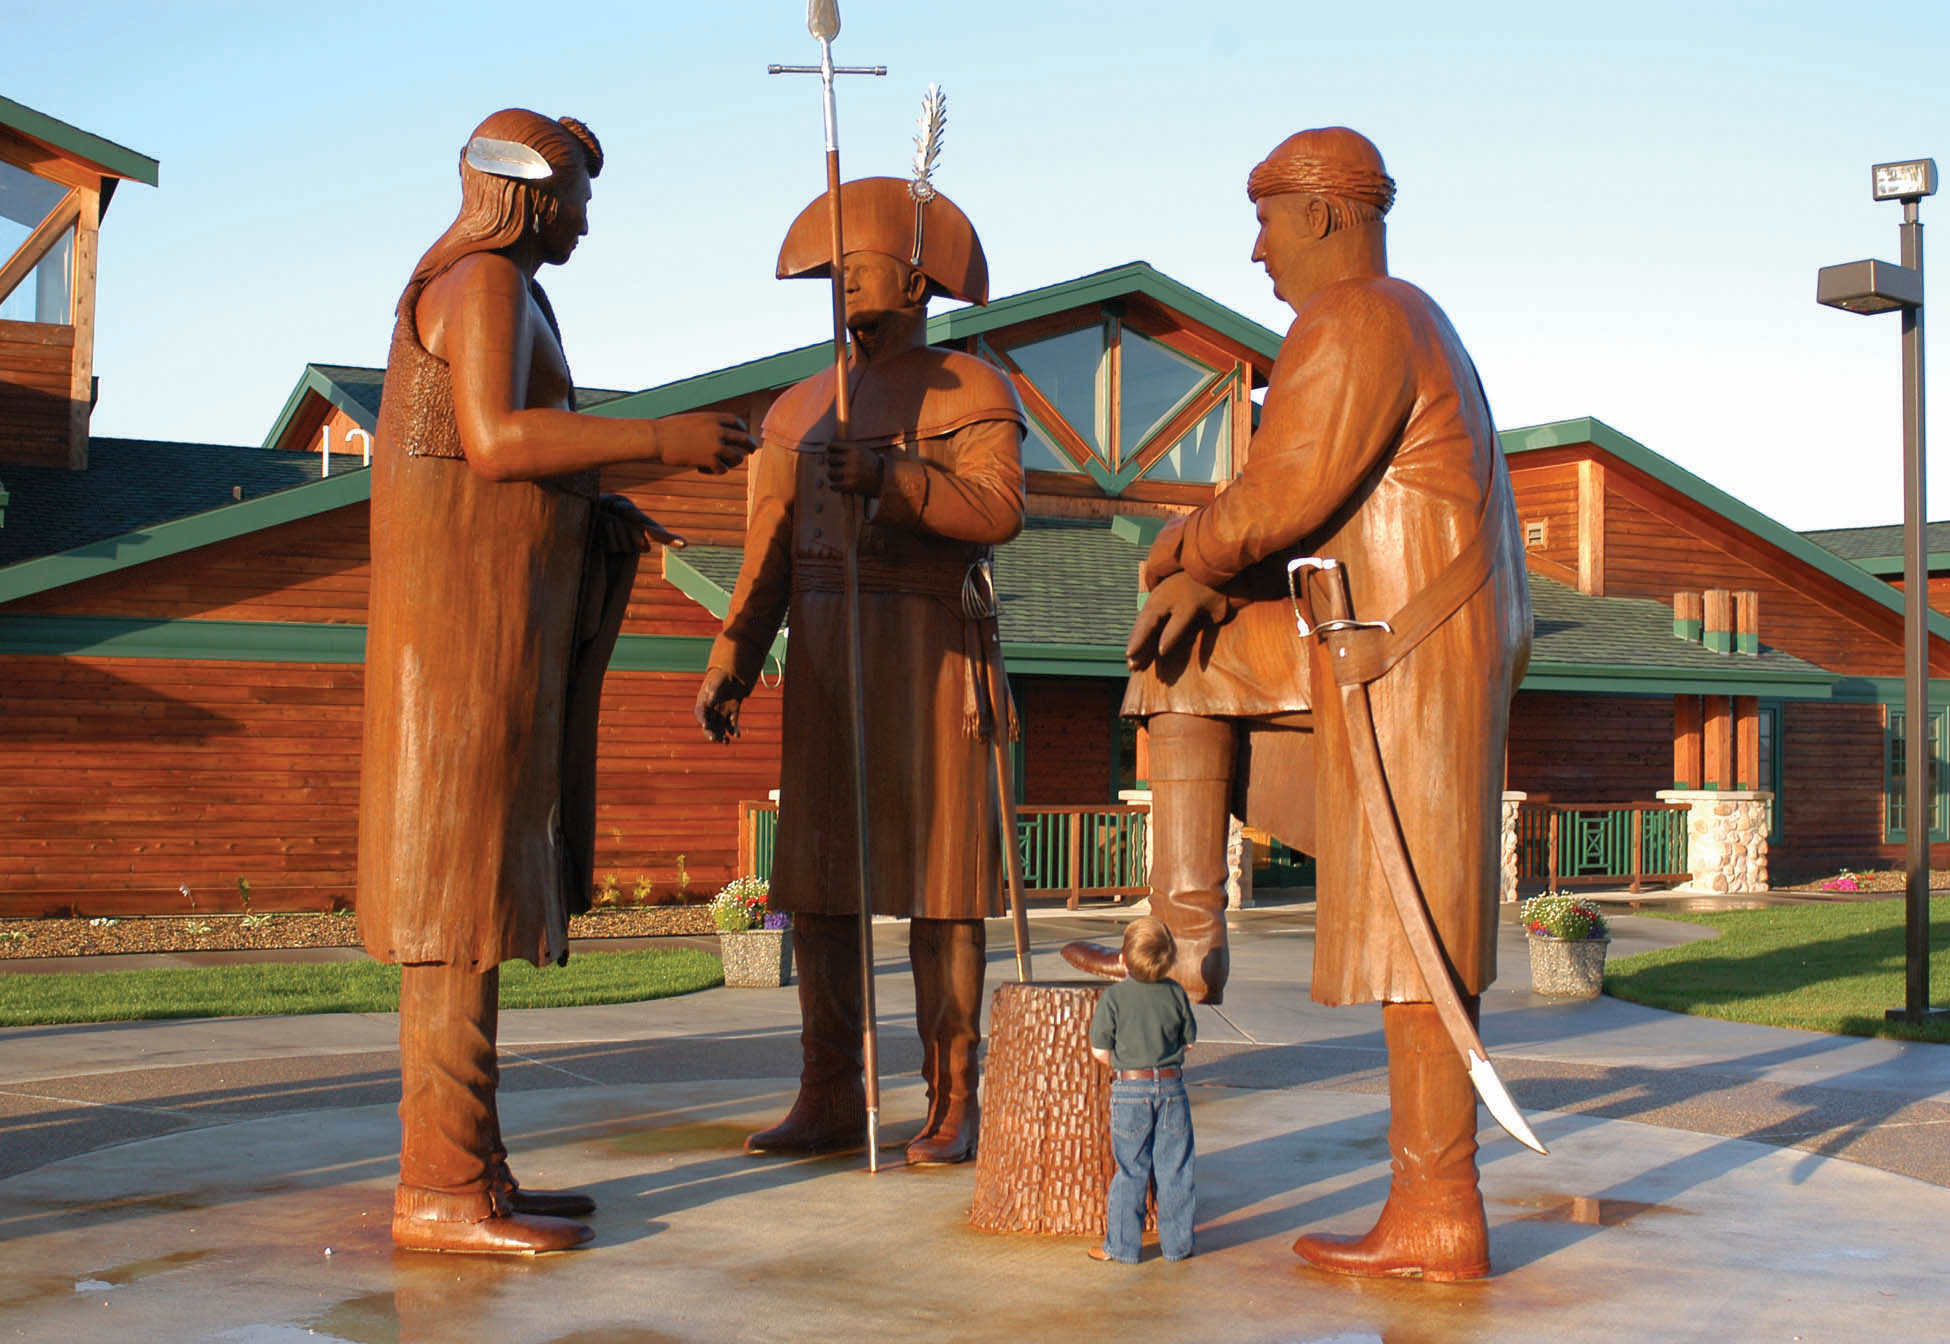 12‐foot‐tall steel statues of Lewis, Clark, and Mandan Chief Sheheke greet visitors